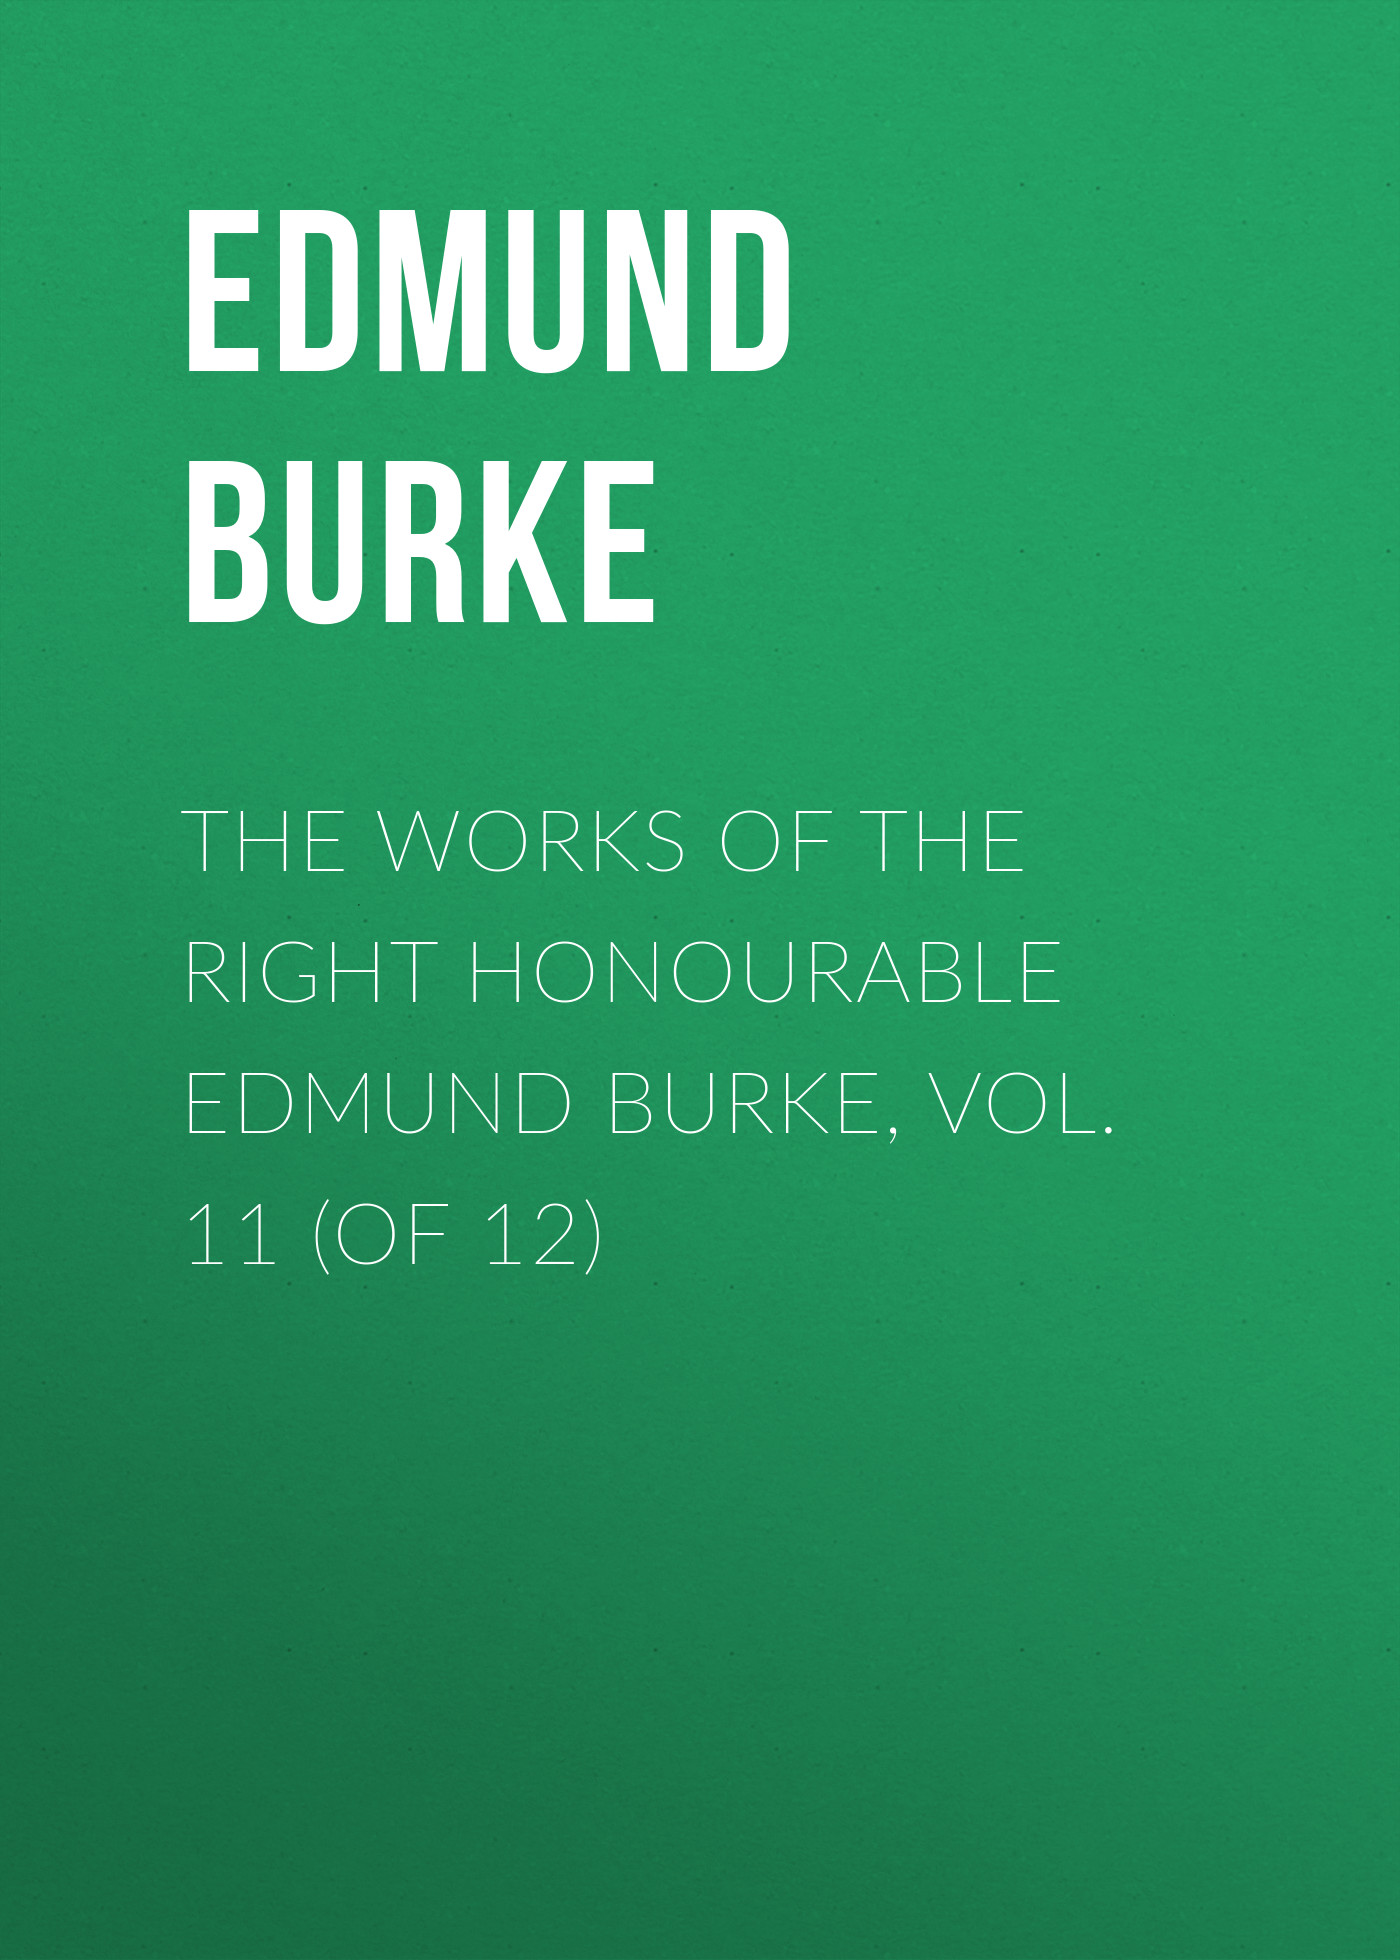 Edmund Burke The Works of the Right Honourable Edmund Burke, Vol. 11 (of 12) edmund burke the works of the right honourable edmund burke vol 02 of 12